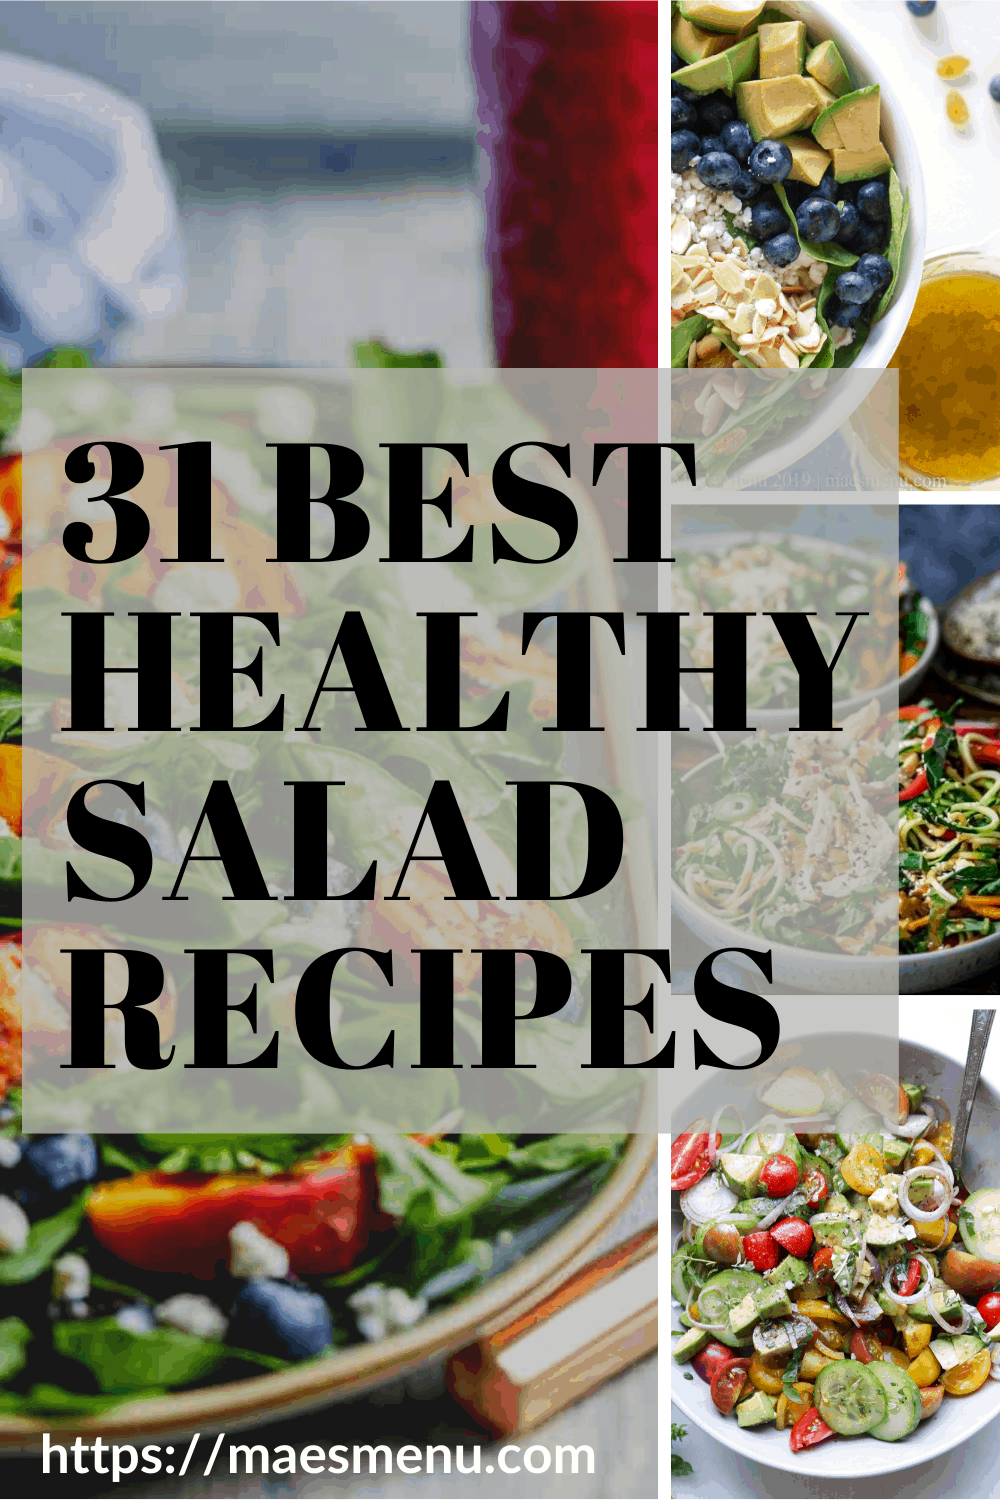 Pinterest pin for 31 best healthy salad recipes.